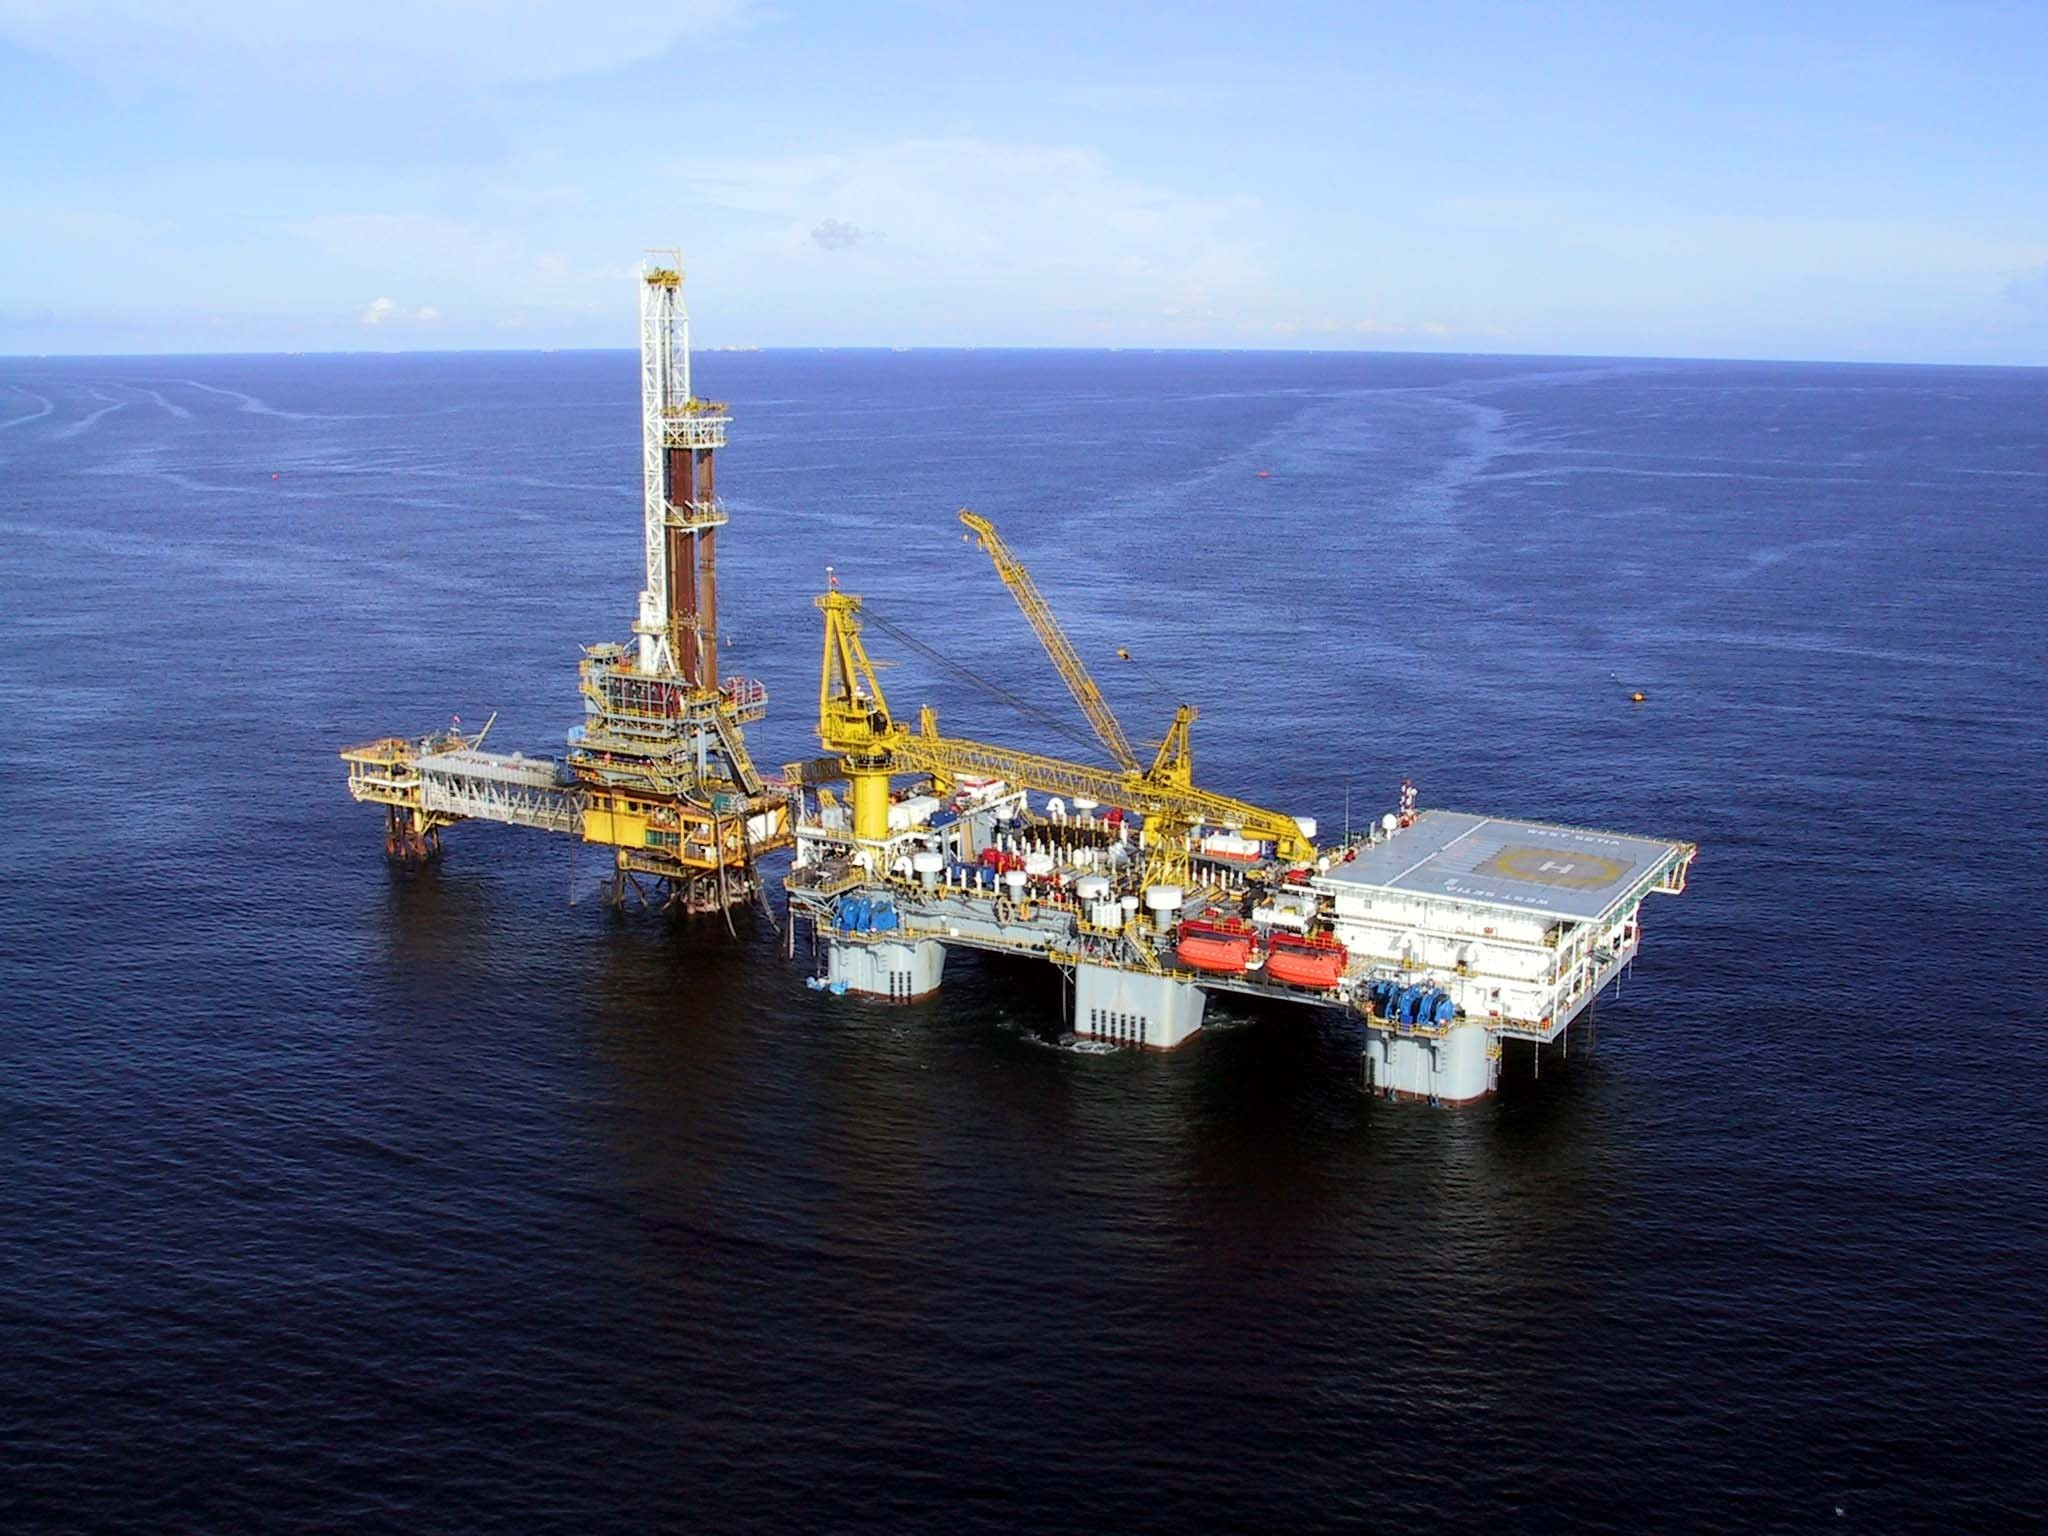 2048x1536 OIL GAS RIG platform ocean sea ship boat 1orig wallpaper |  |  847466 | WallpaperUP